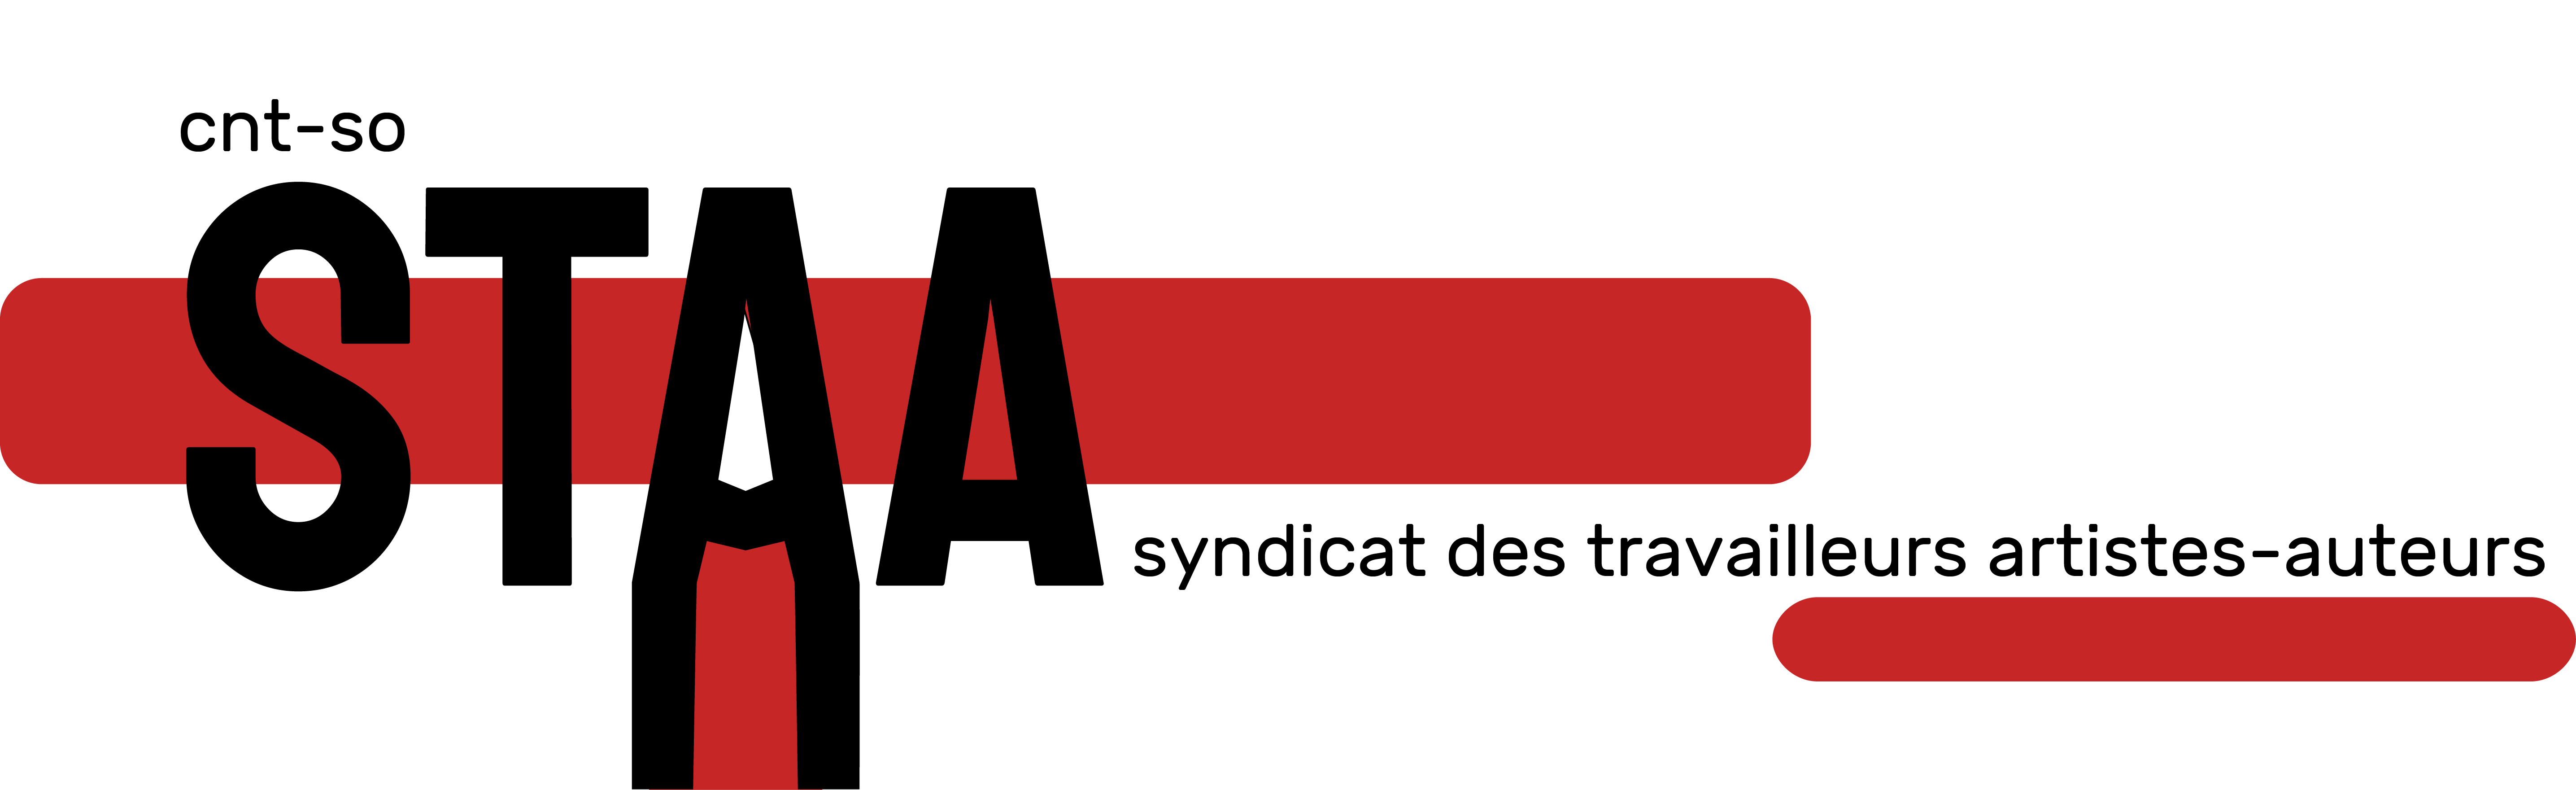 logo_staa.png